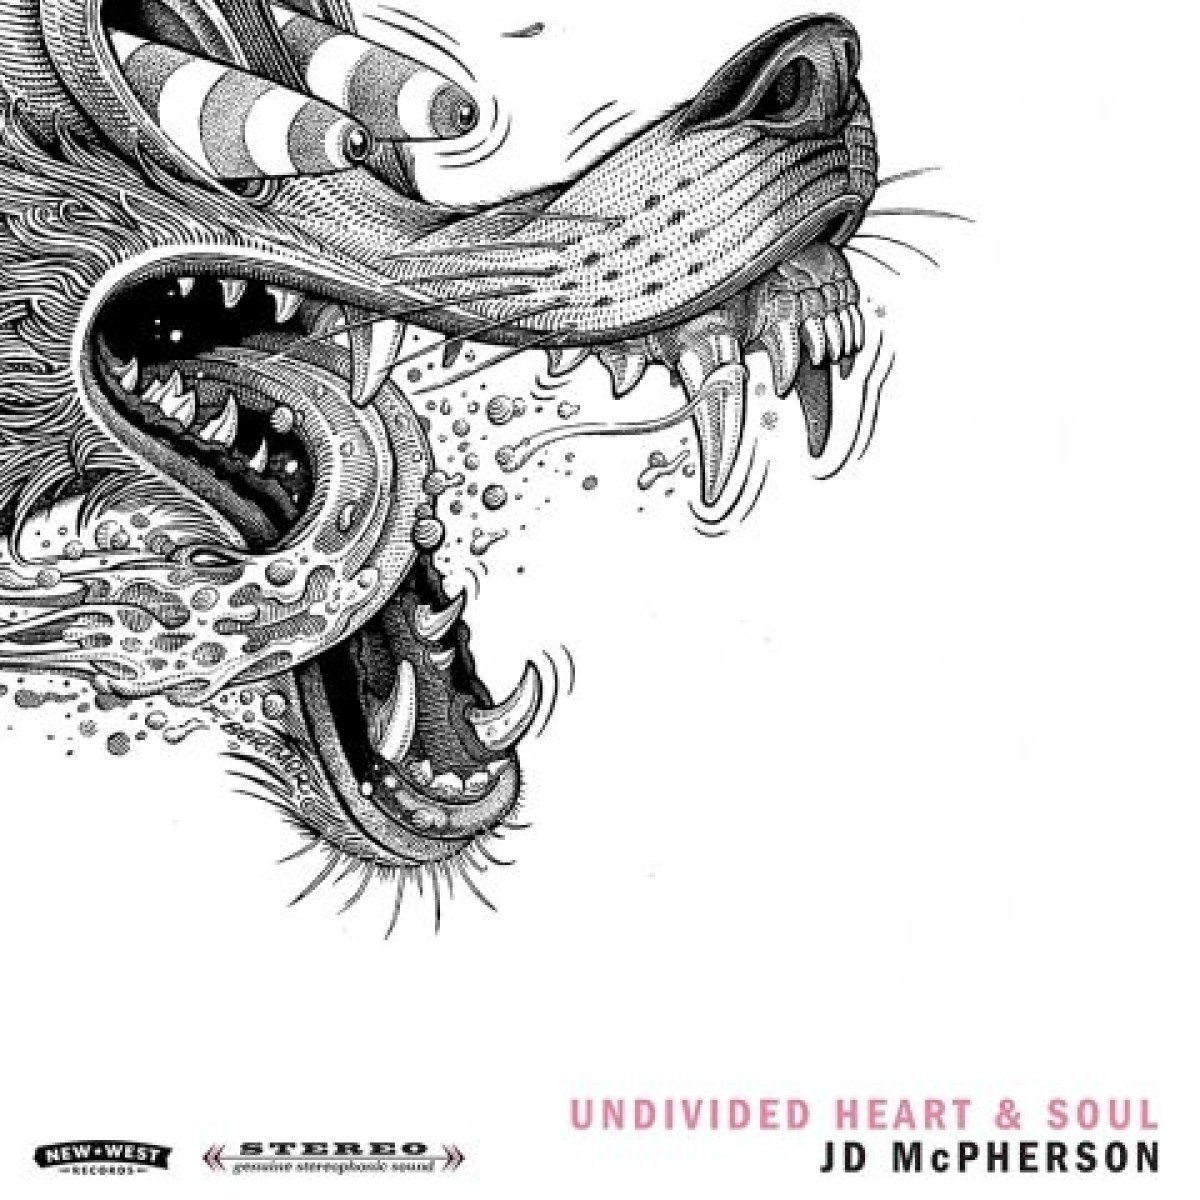 jd mcpherson undivided heart and soul new west records rock 'n' roll 2017 americana studio b nashville tennessee critique review chronique